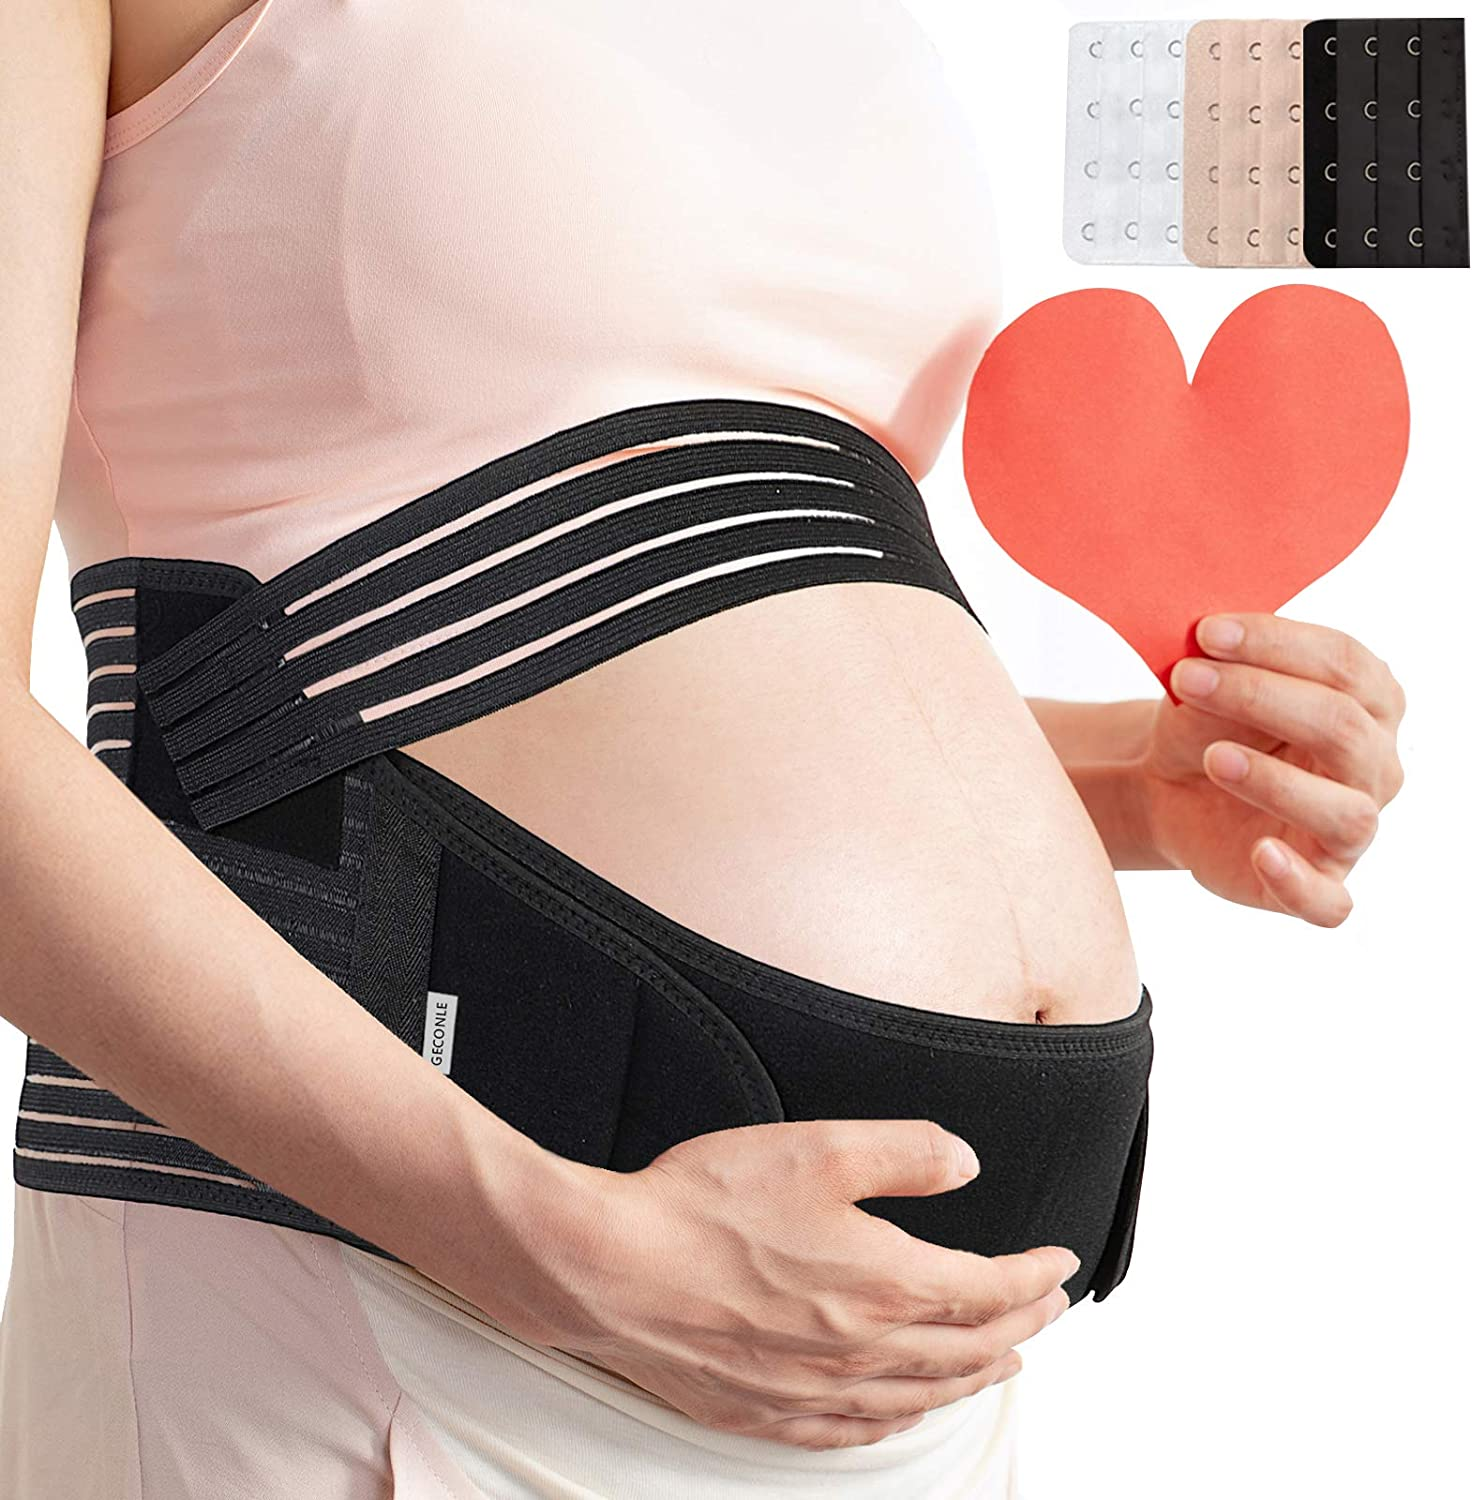 Pregnancy Belly Support Band Maternity Belt Comfortable & Breathable for Pain Relief and Postpartum Recovery Black : Clothing, Shoes & Jewelry